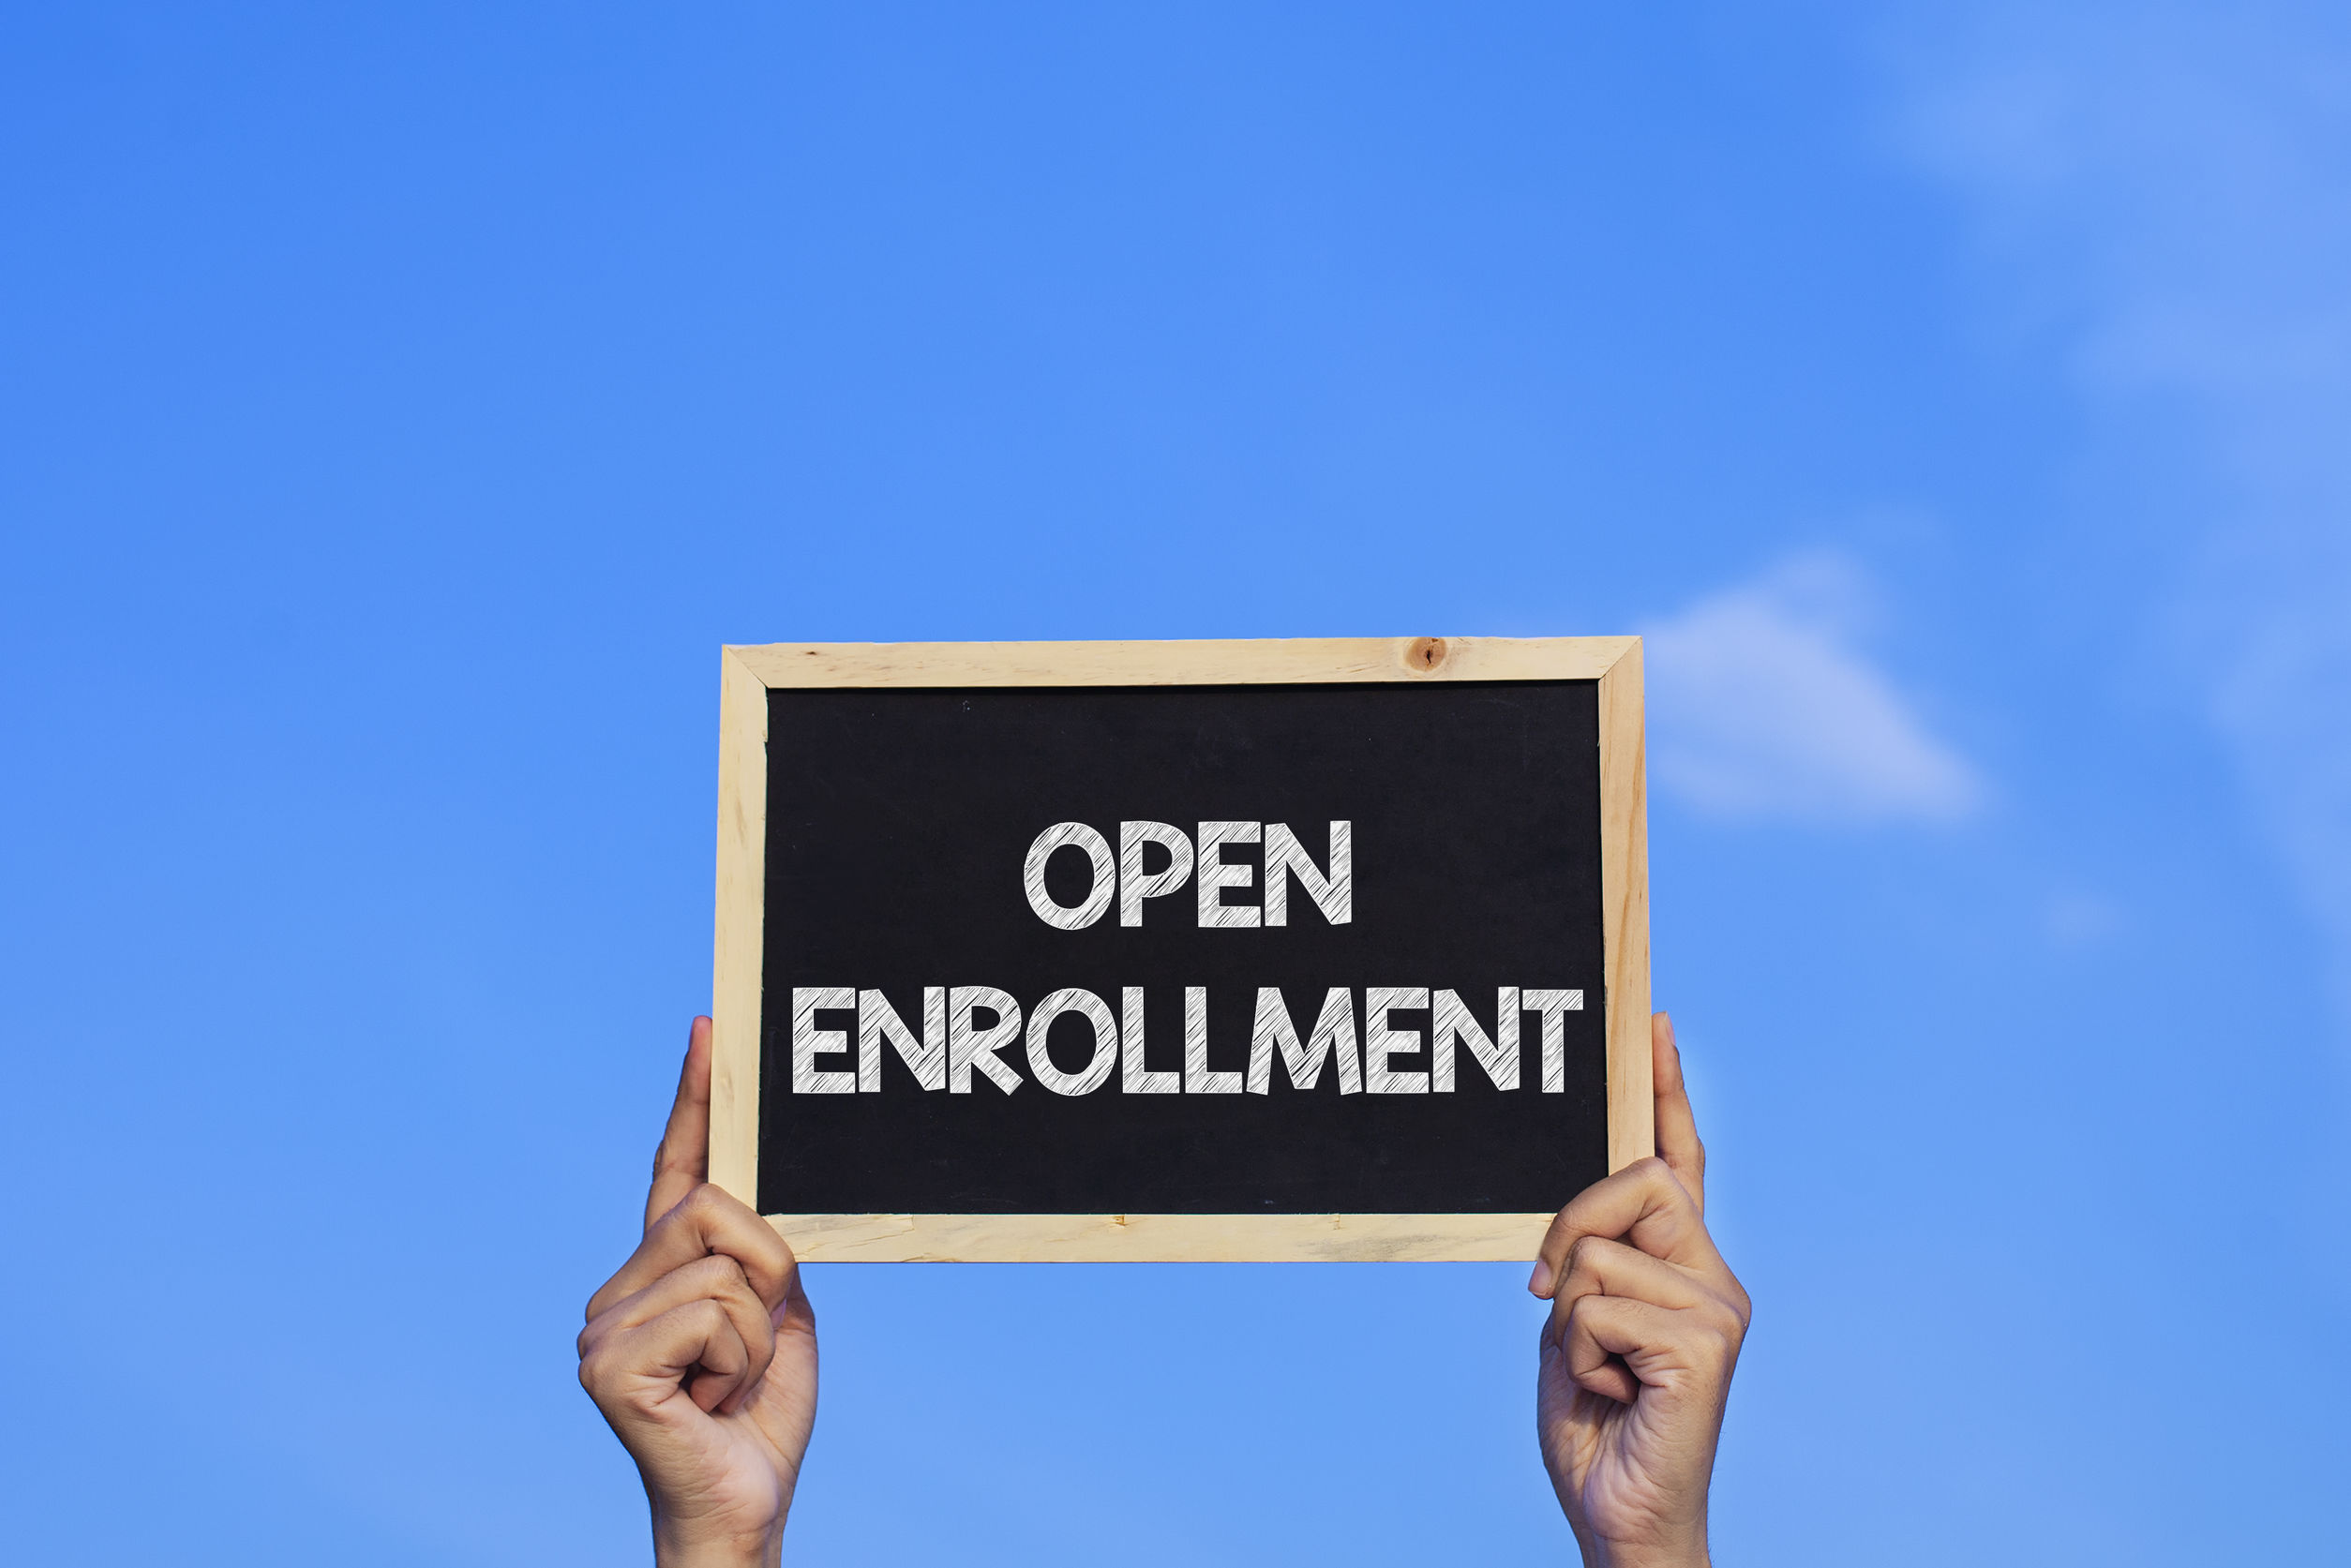 OPEN ENROLLMENT/ Man holding small blackboard on blue sky backgr